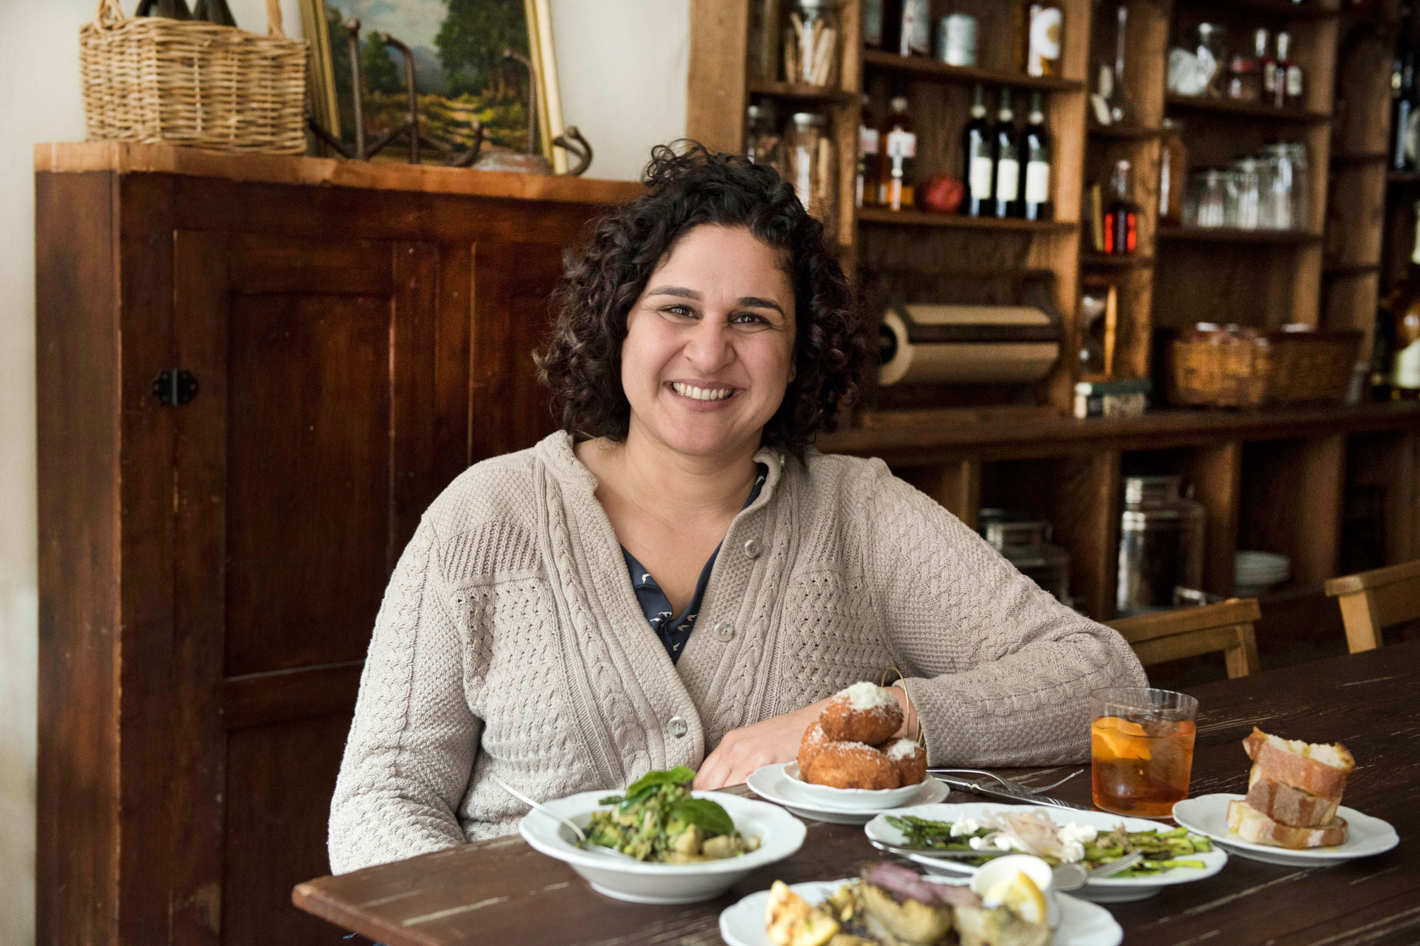 samin nosrat At Via Carota. Photo: Liz Clayman